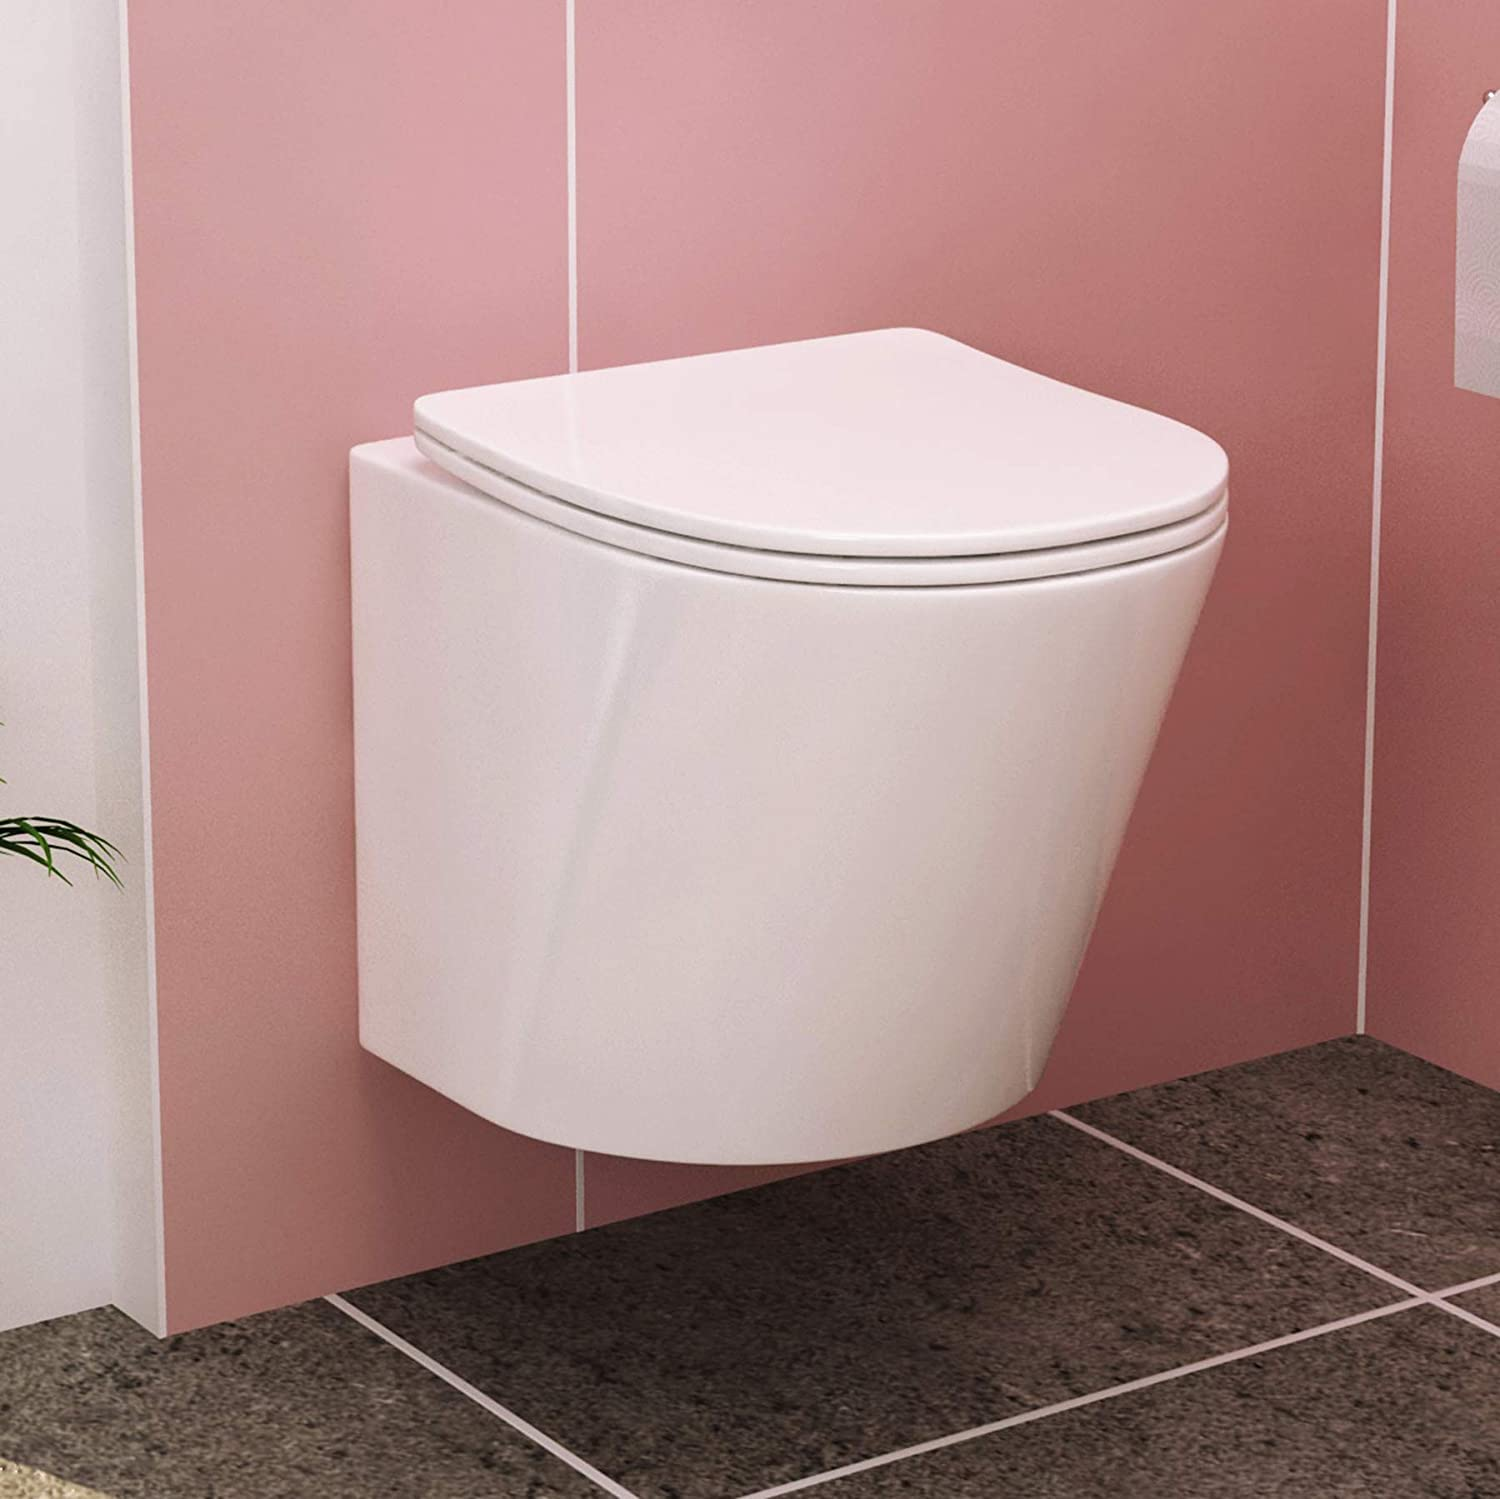 Cesar 370mm Bathroom Short Projection Wall Hung Rimless Toilet Pan with Slim Soft Close Seat